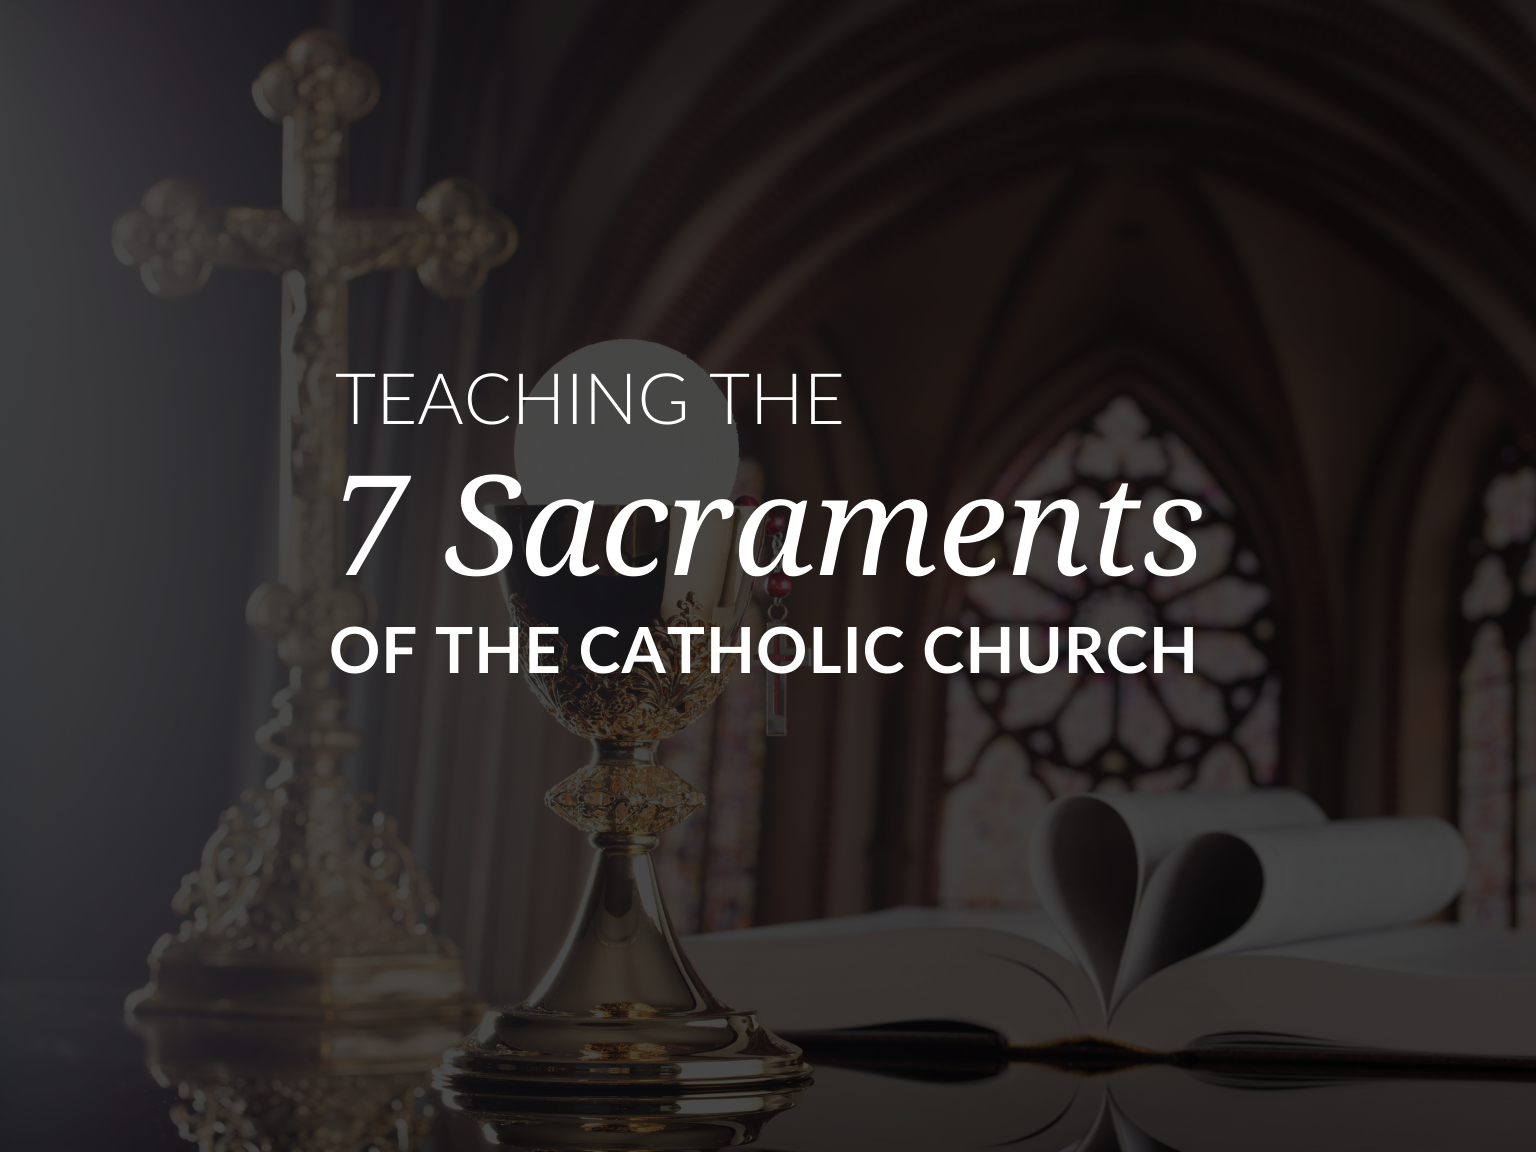 teaching-the-7-sacraments-of-the-catholic-church-the-7-sacraments-in-order